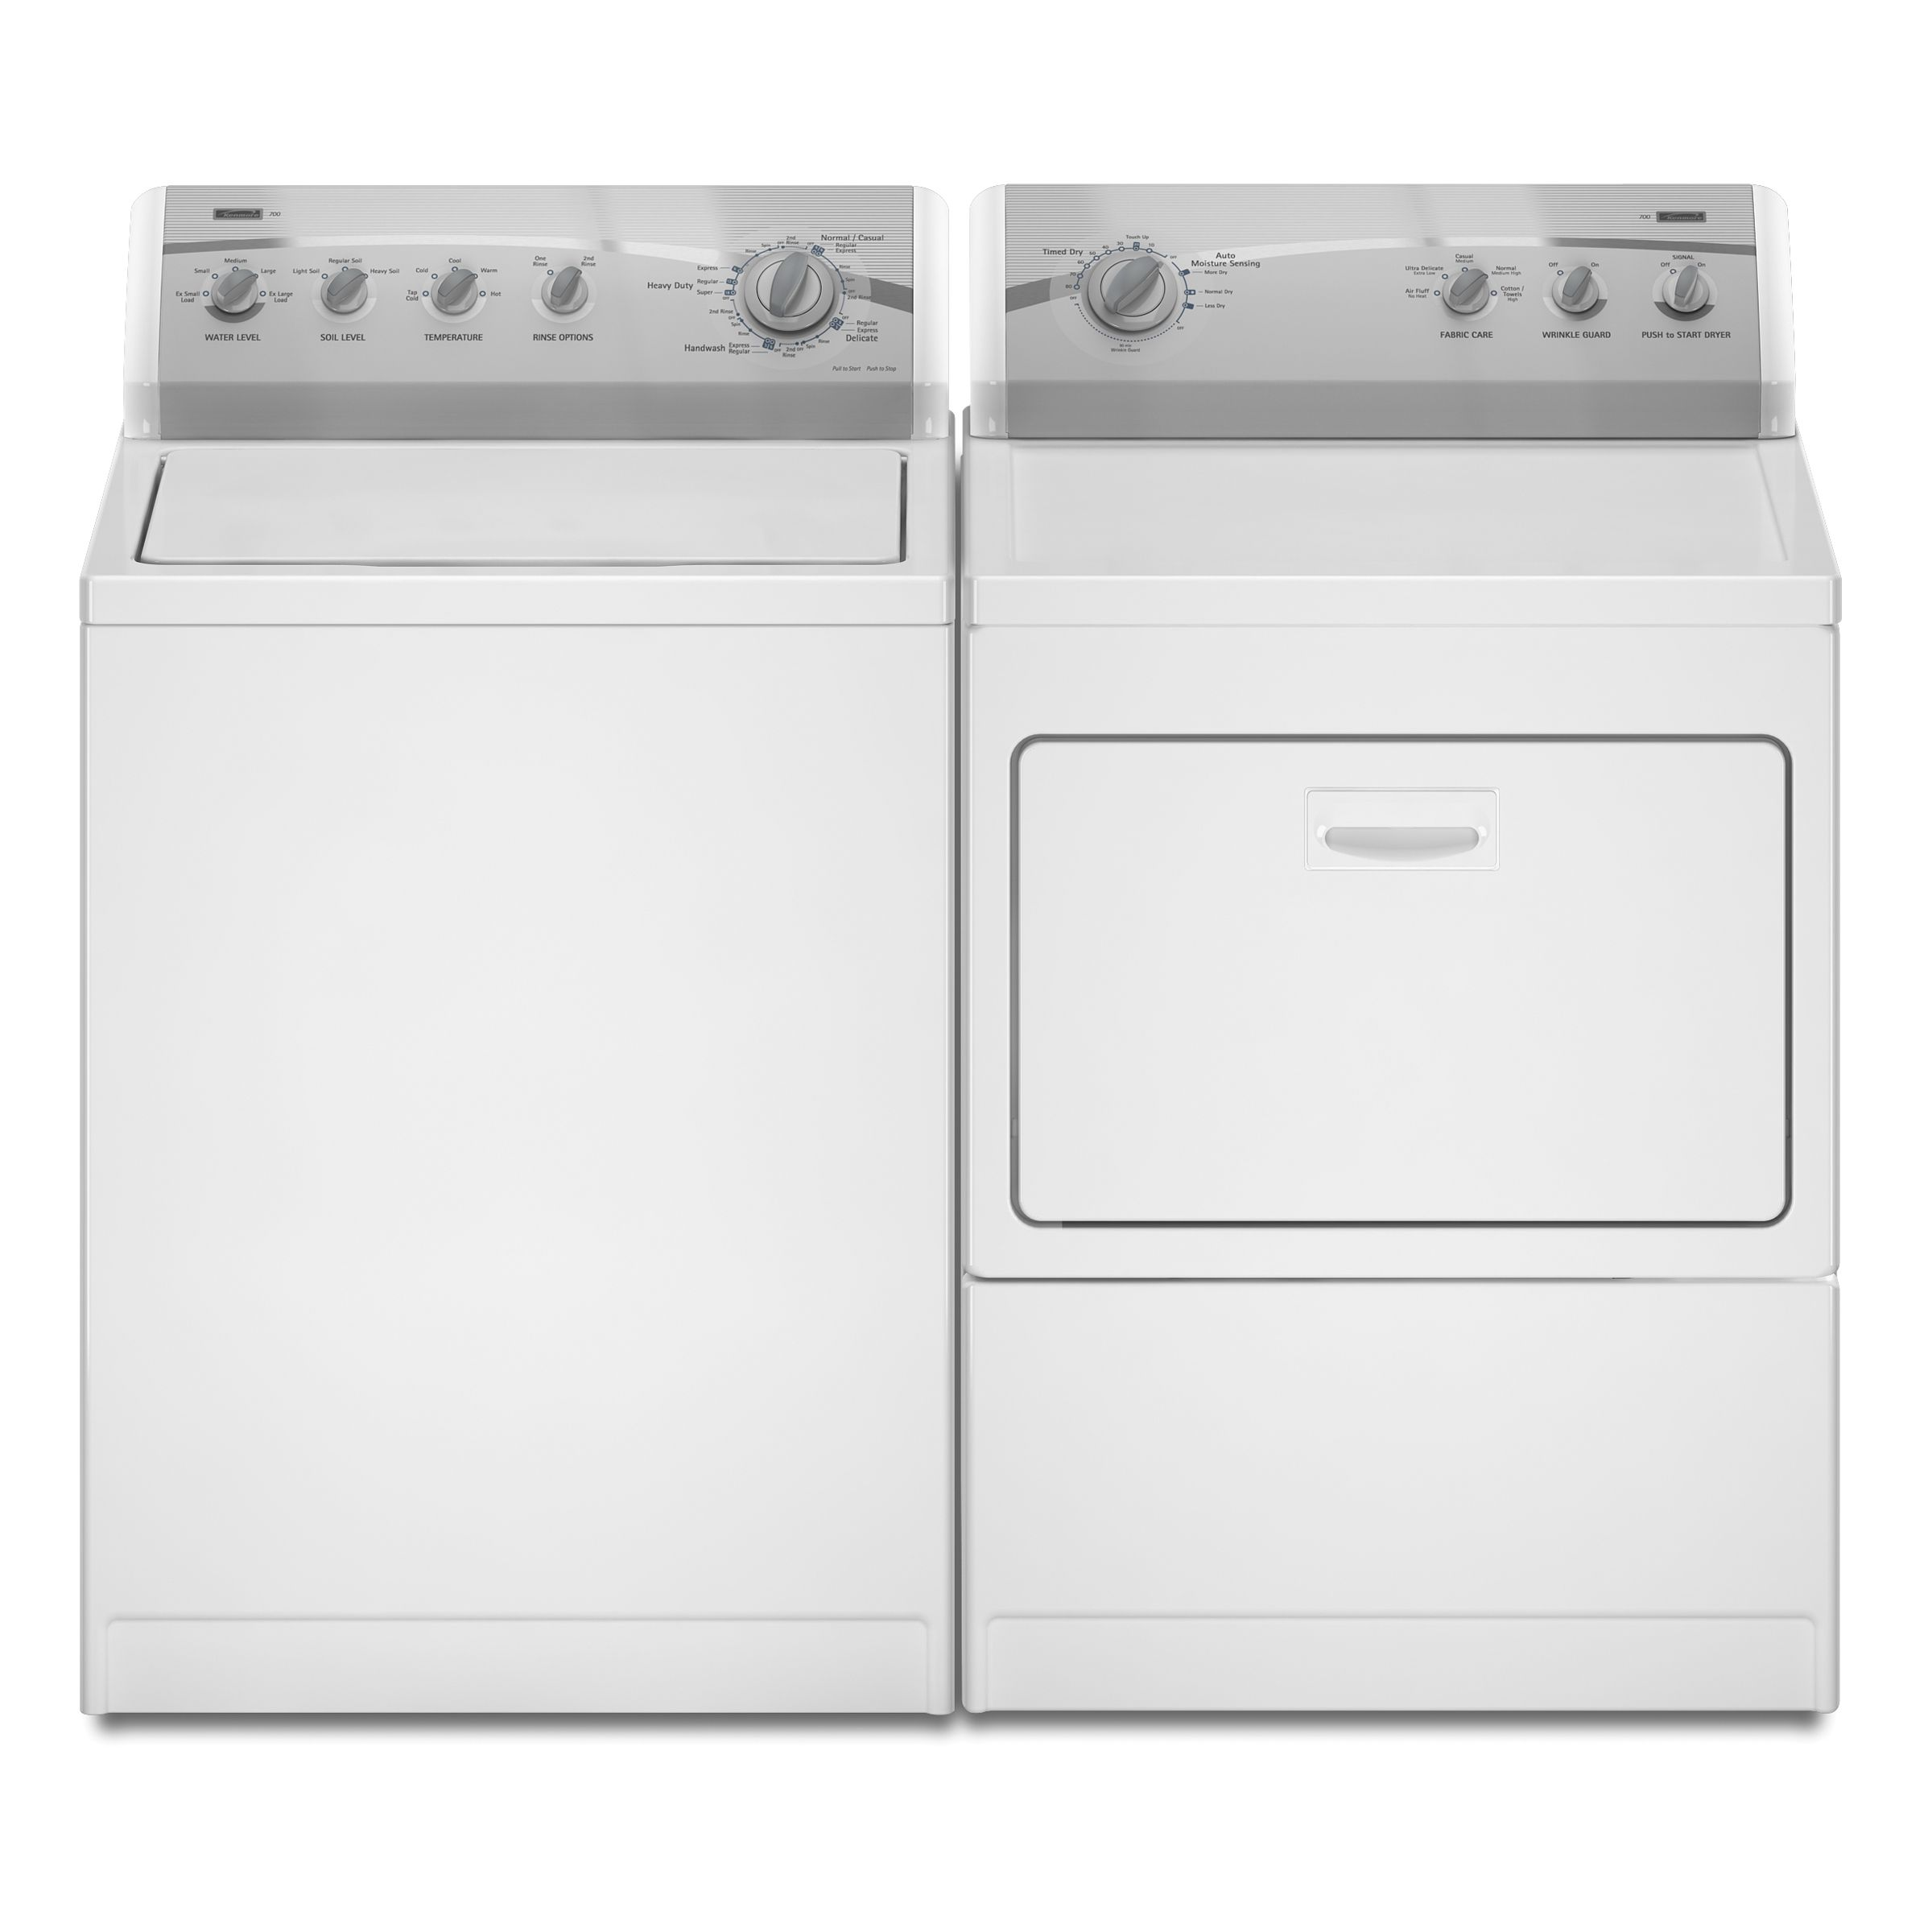 Kenmore 700 3.5 cu. ft. Capacity Top-Load Washer